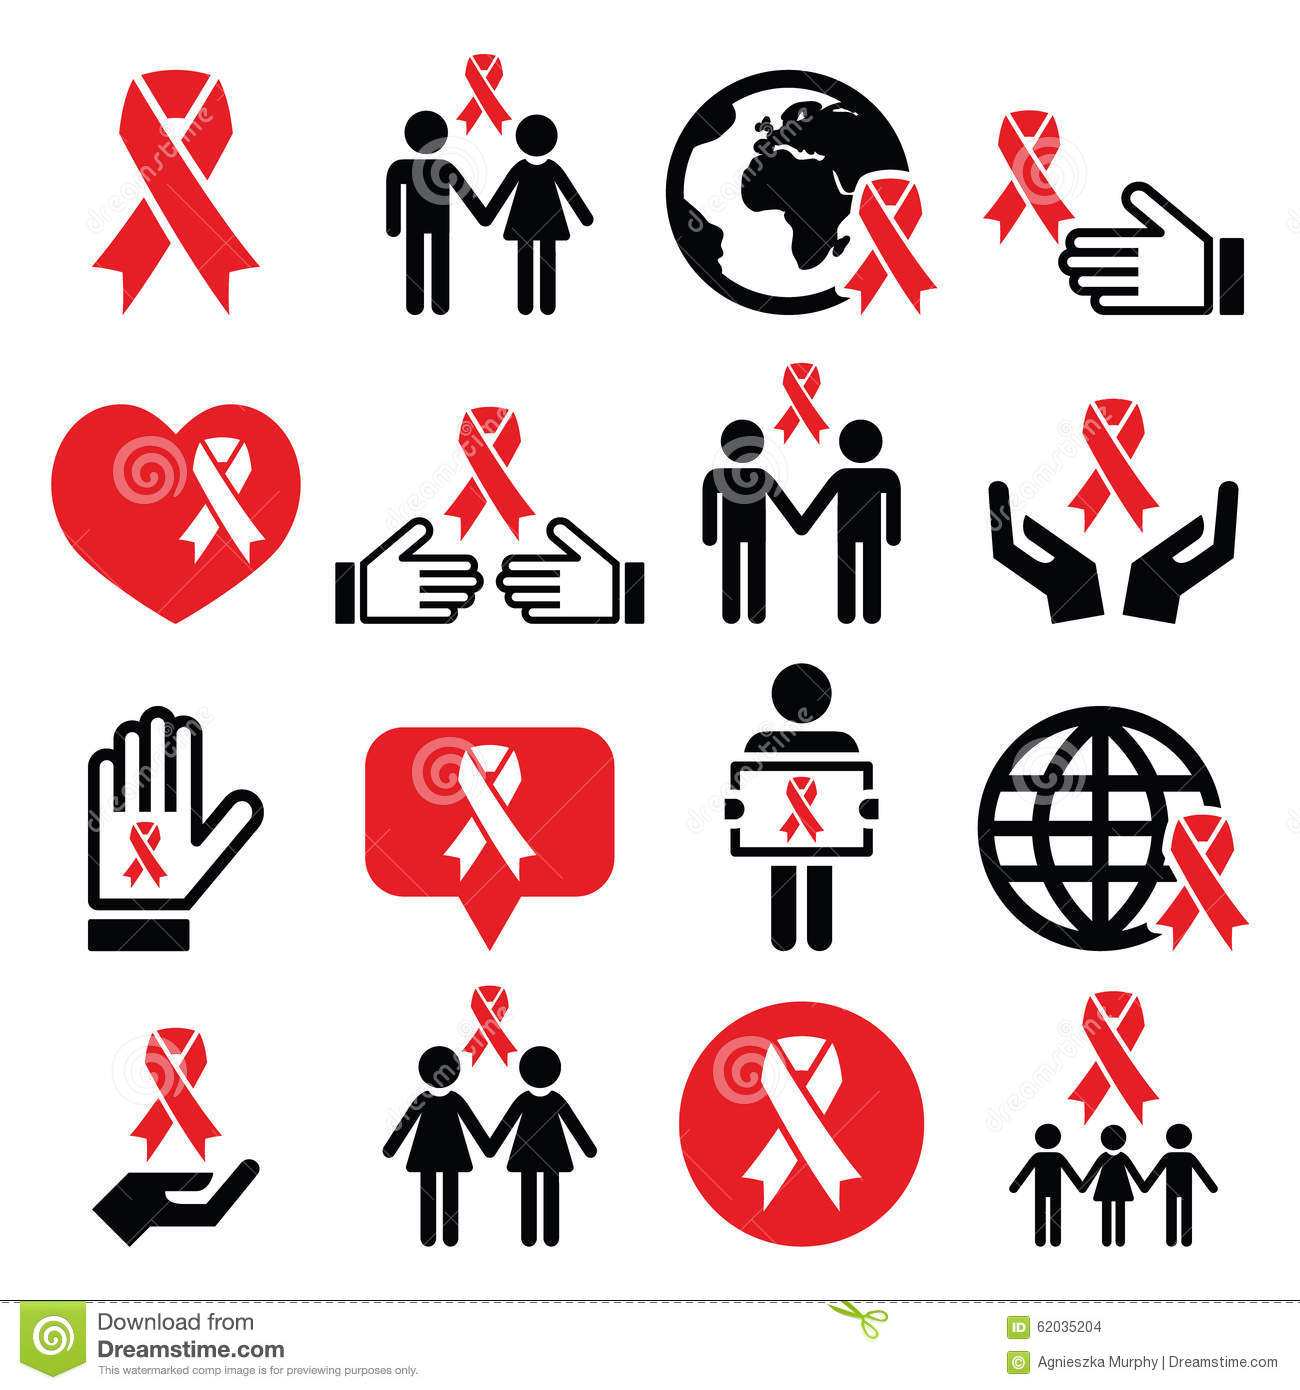 World aids day icons set red ribbon symbol stock vector world aids day icons set red ribbon symbol buycottarizona Image collections